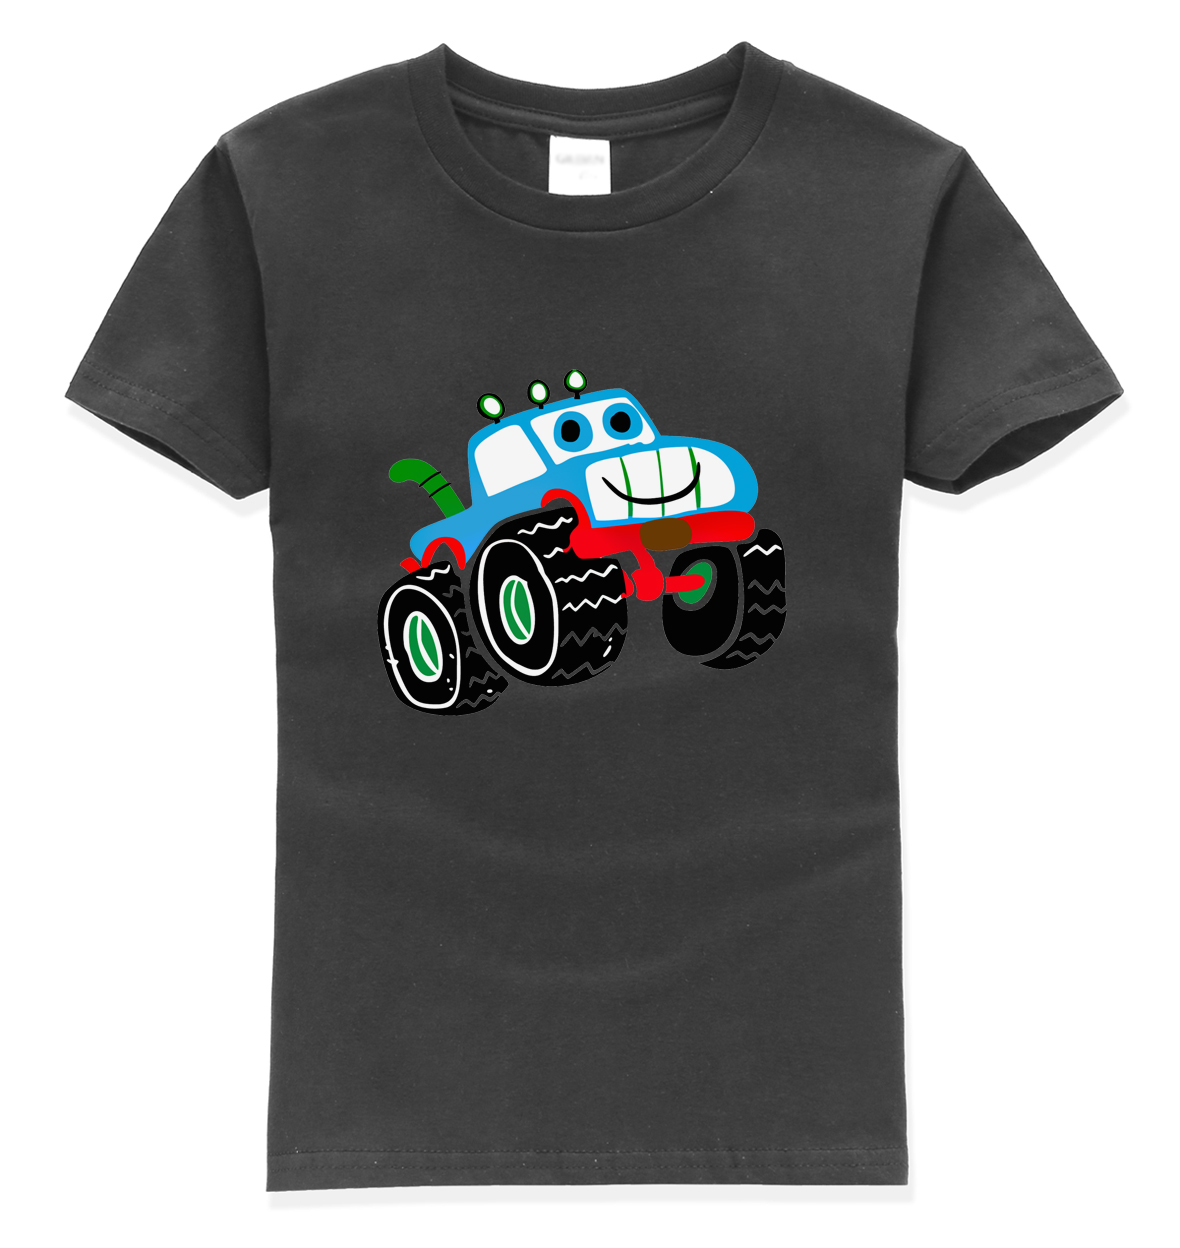 2018 summer new fashion brand hot sale t shirts children funny cartoon car tops tee homme kids t shirt boys clothes short sleeve wa05875ba fashion designer brands luxury men t shirt 2018 summer famous design t shirt men brand clothing fashion tee tops